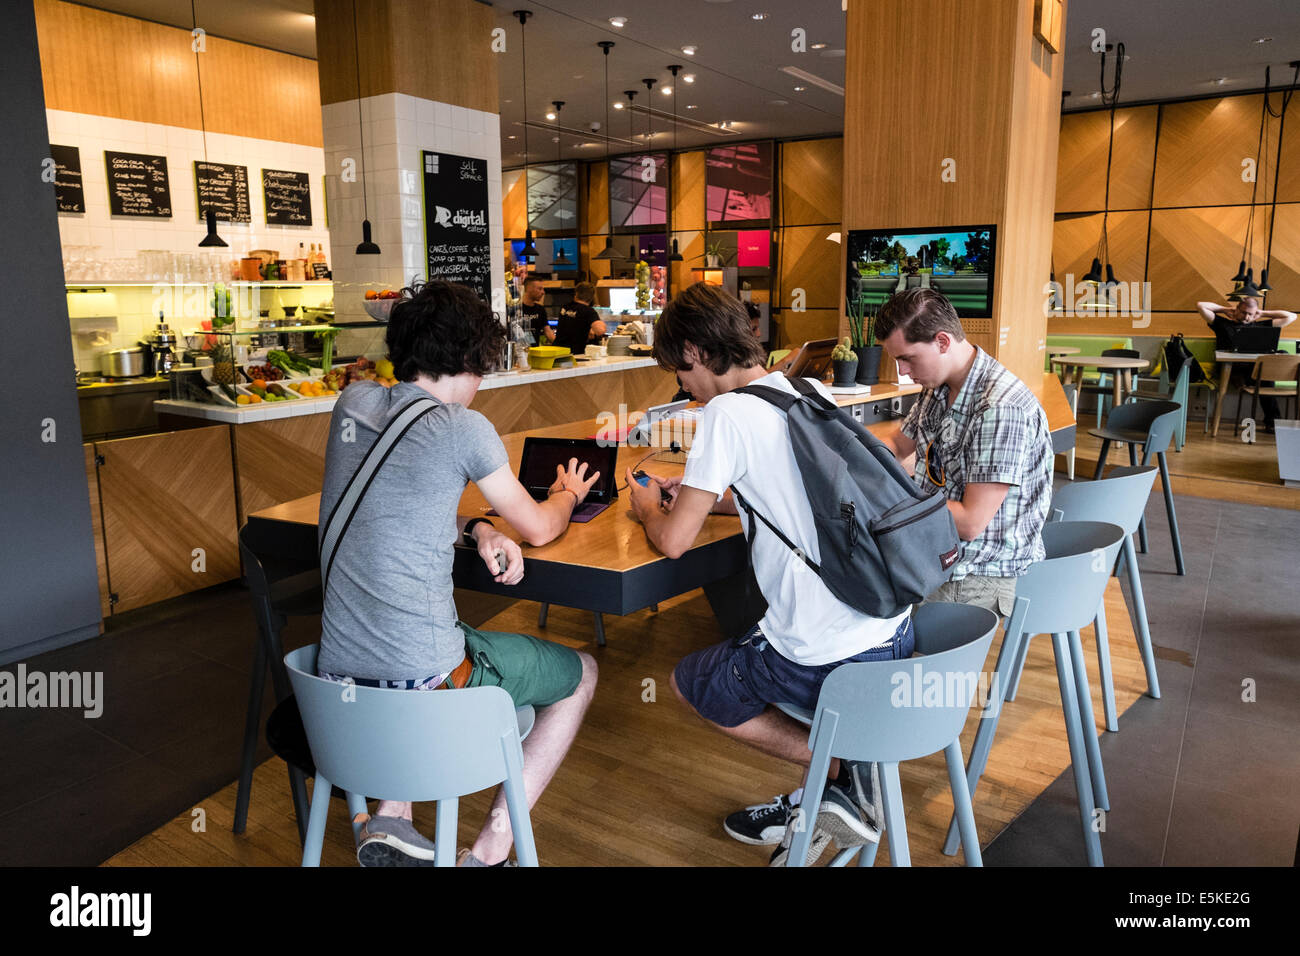 Nouveau Microsoft Digital Eatery cafe sur l'Unter den Linden à Berlin Allemagne Photo Stock